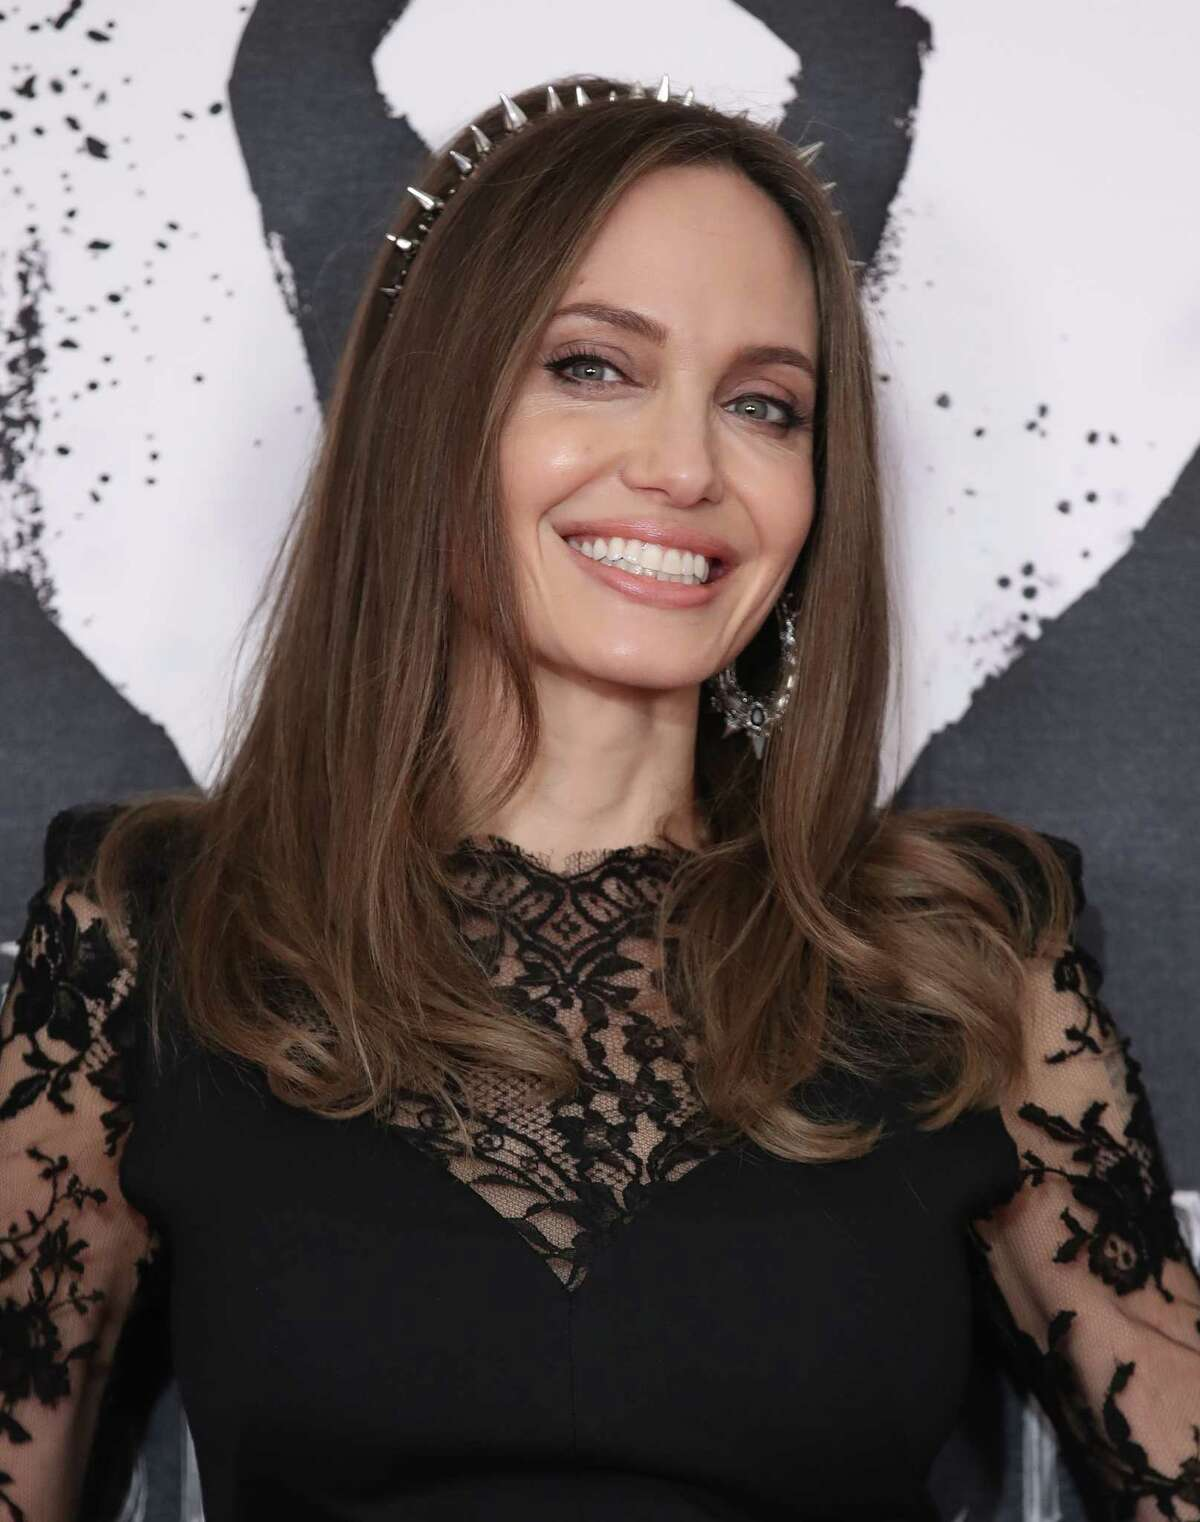 LONDON, ENGLAND - OCTOBER 10: Angelina Jolie attends a photocall for